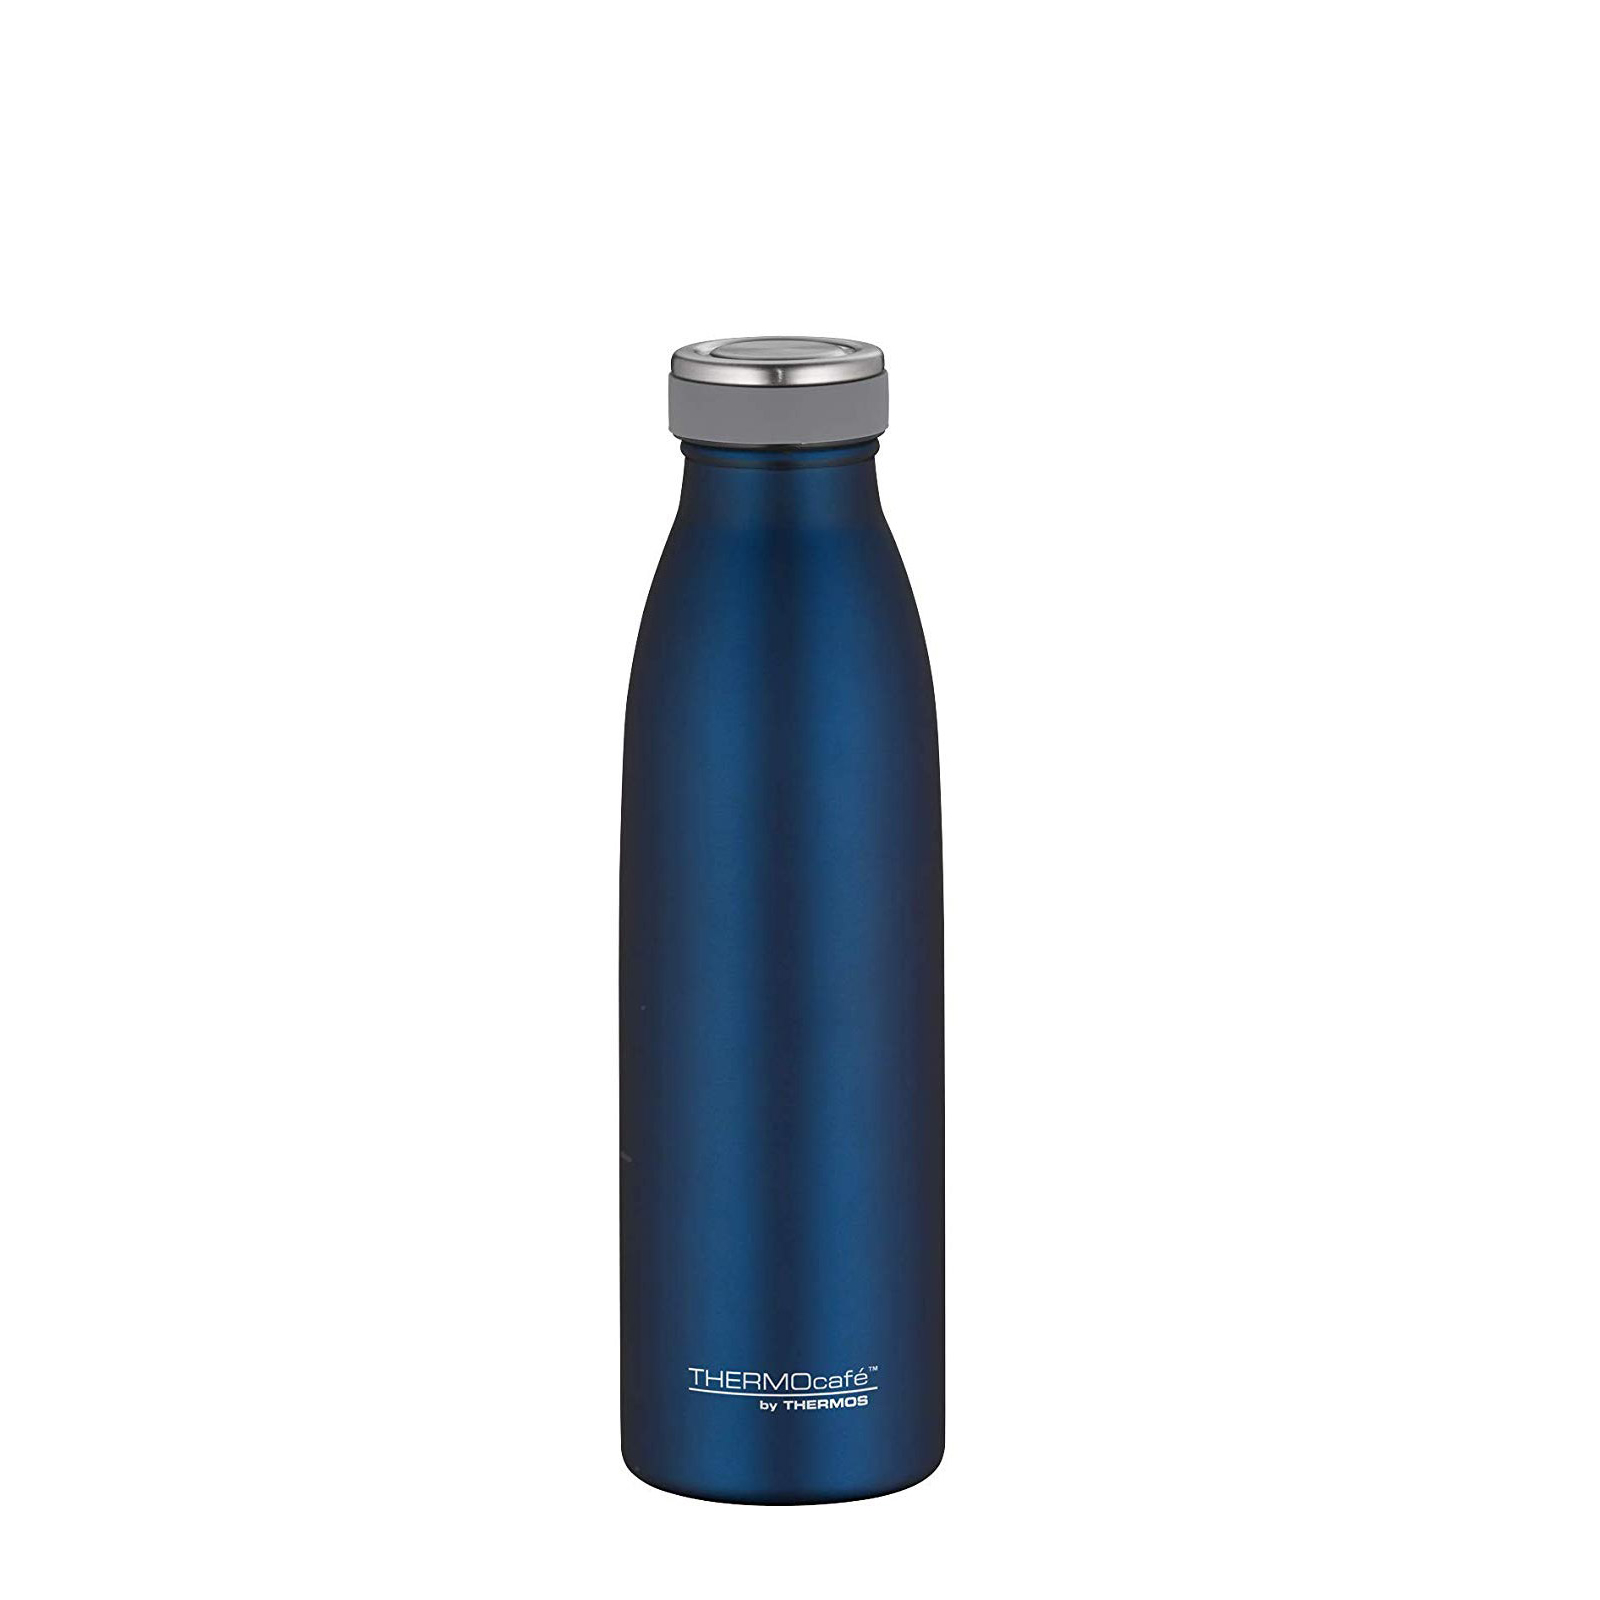 TC Bottle Thermosflasche Saphir Blau 0,5 Liter Isolierflasche